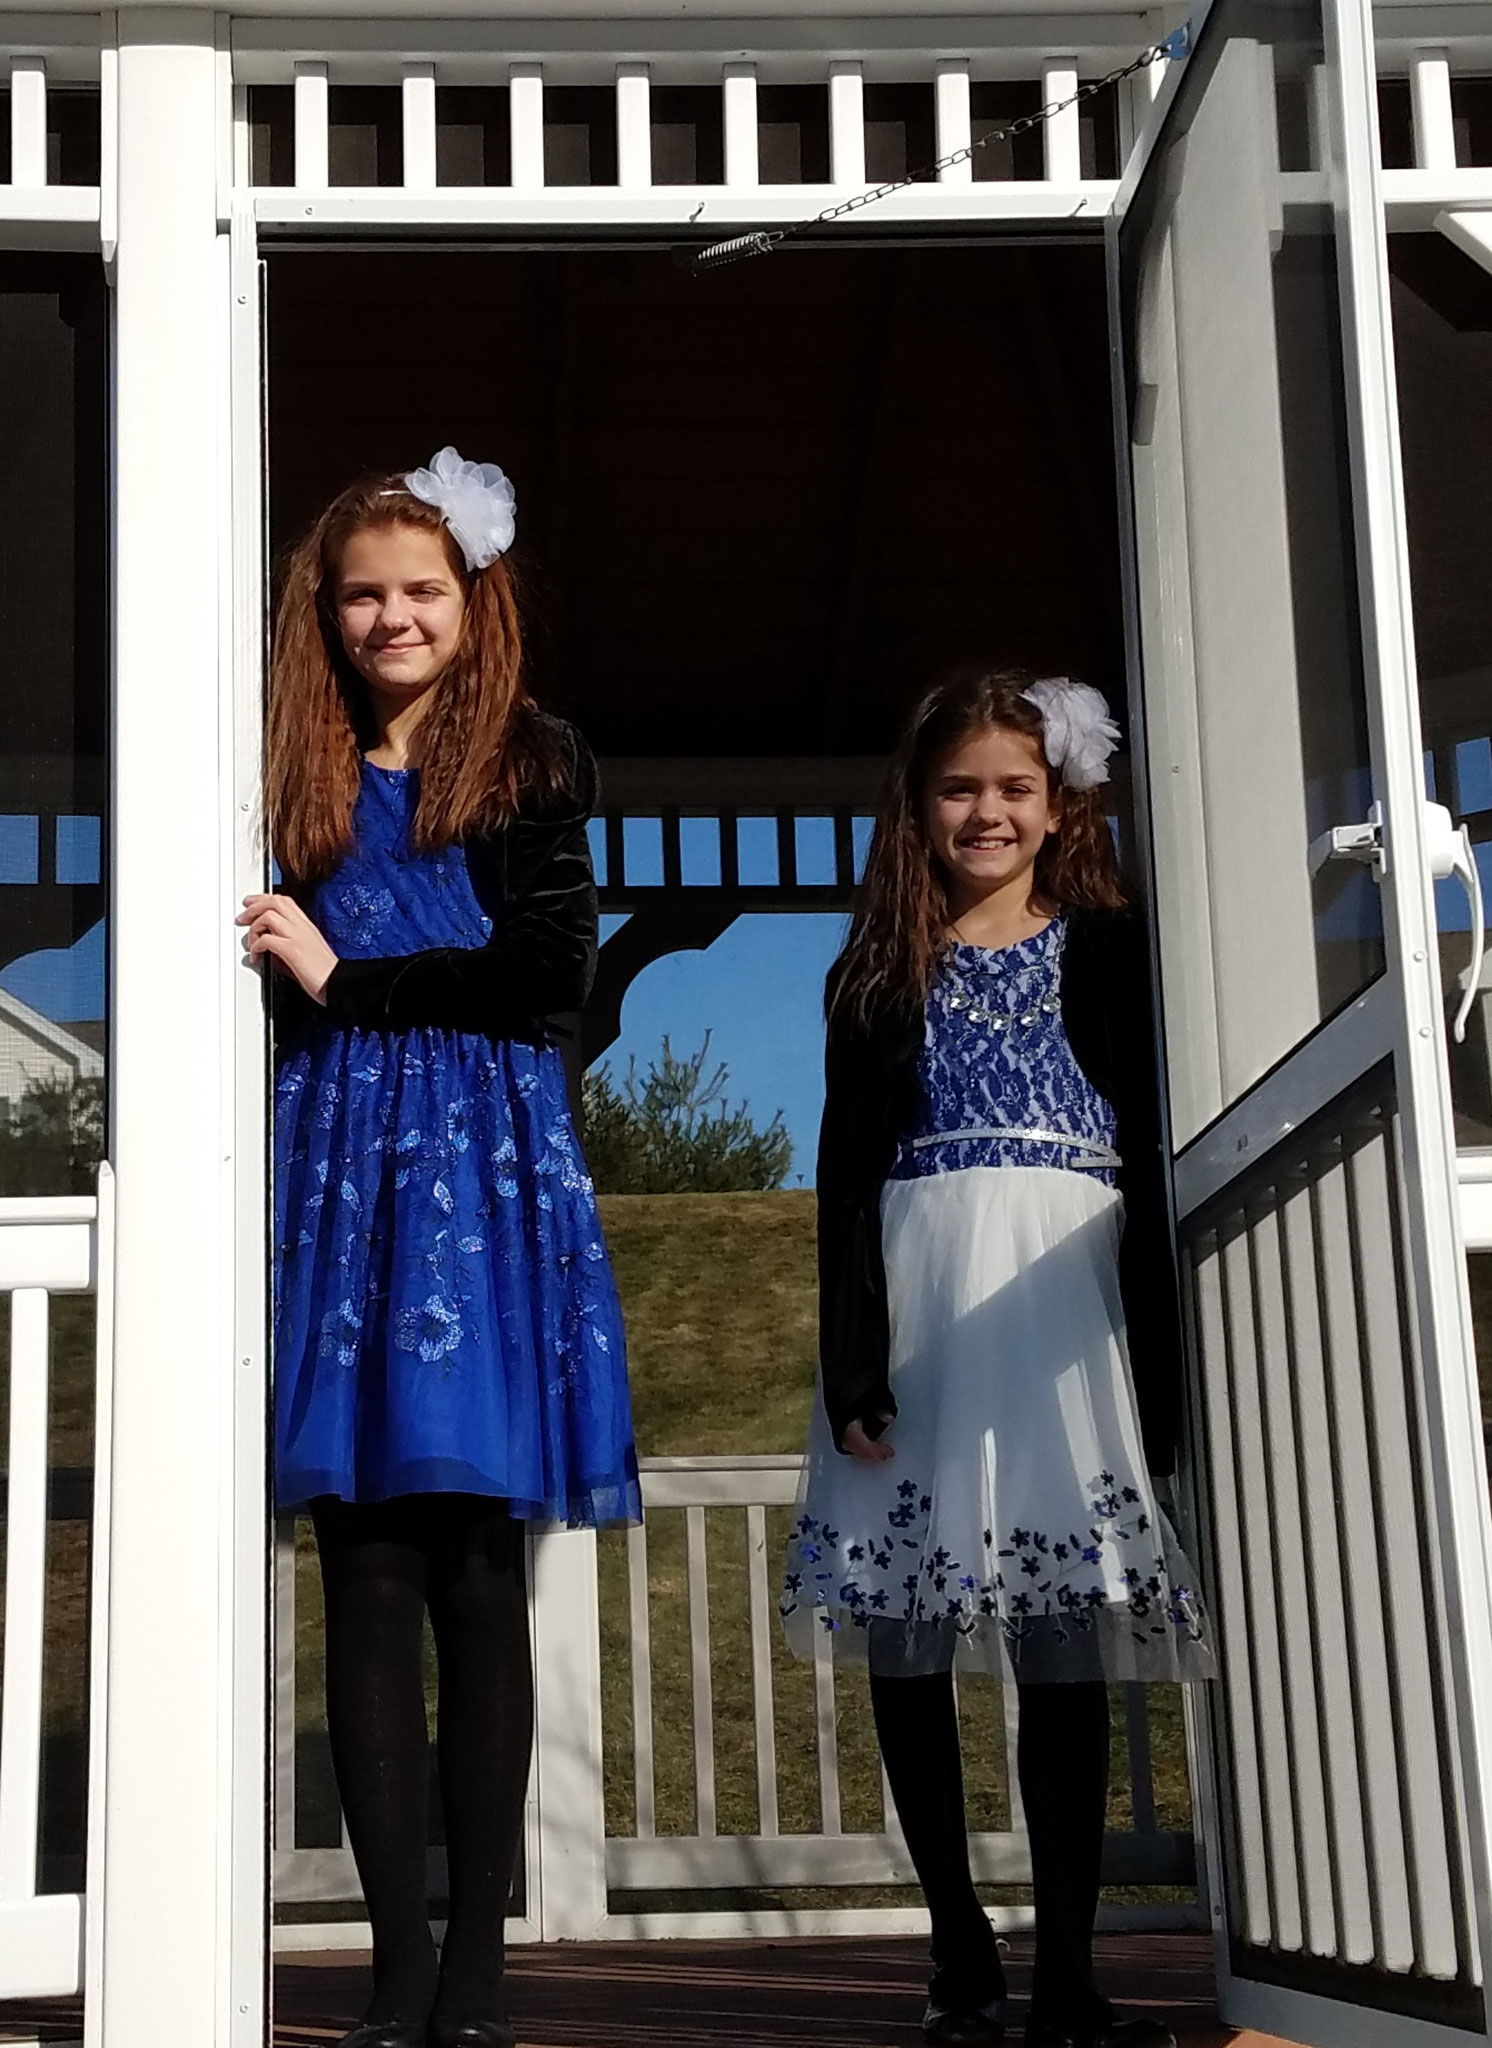 """ANNA AND ELISA PLANO WON 3rd PRIZE AT THE INTERNATIONAL MUSIC COMPETITION """"THE MUSIC OF MEDITERRANEAN EUROPE"""""""